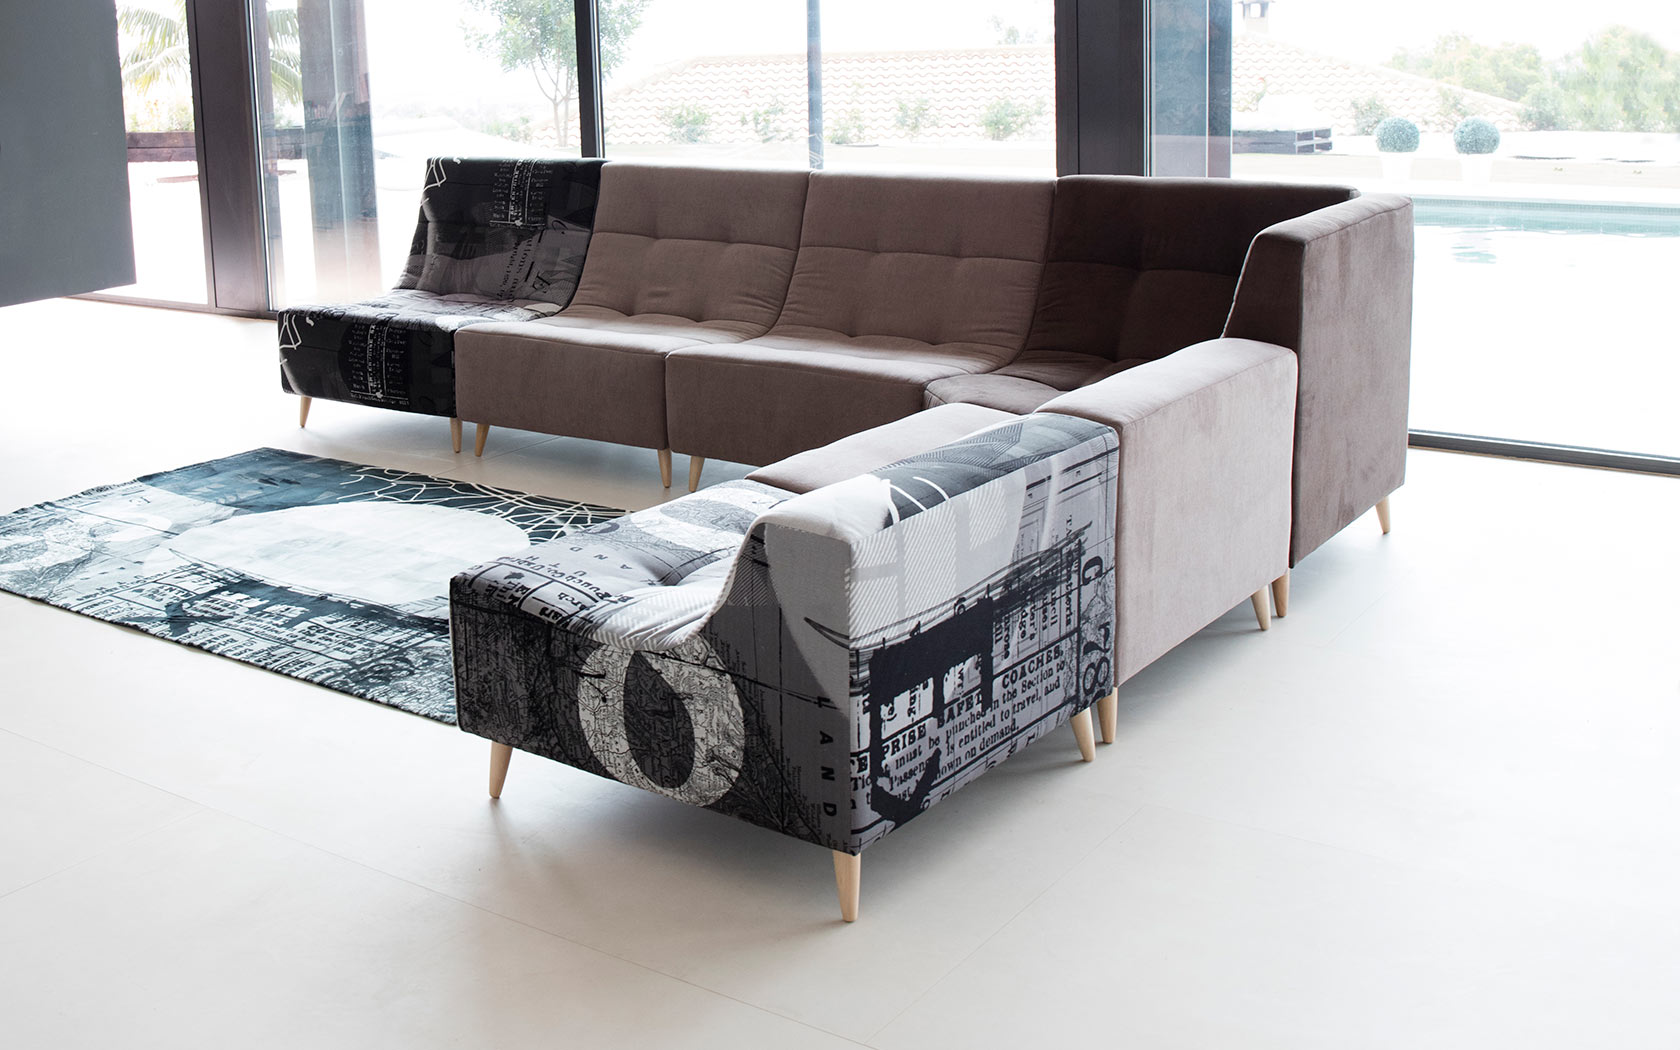 Luci Pop sofa fama 2019 13